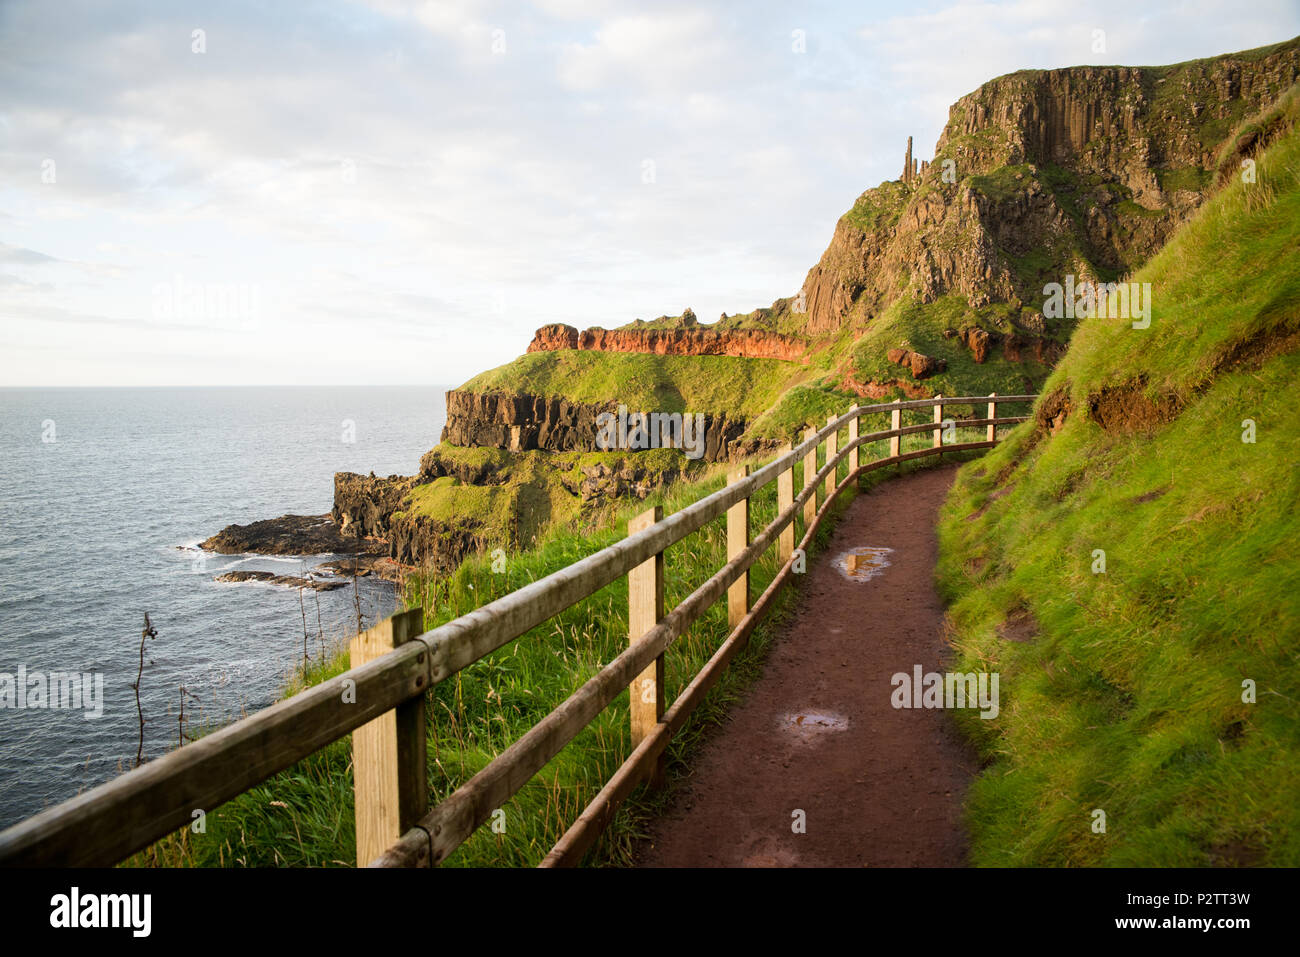 A path on the side of a mountain by the ocean in Northern Ireland. - Stock Image